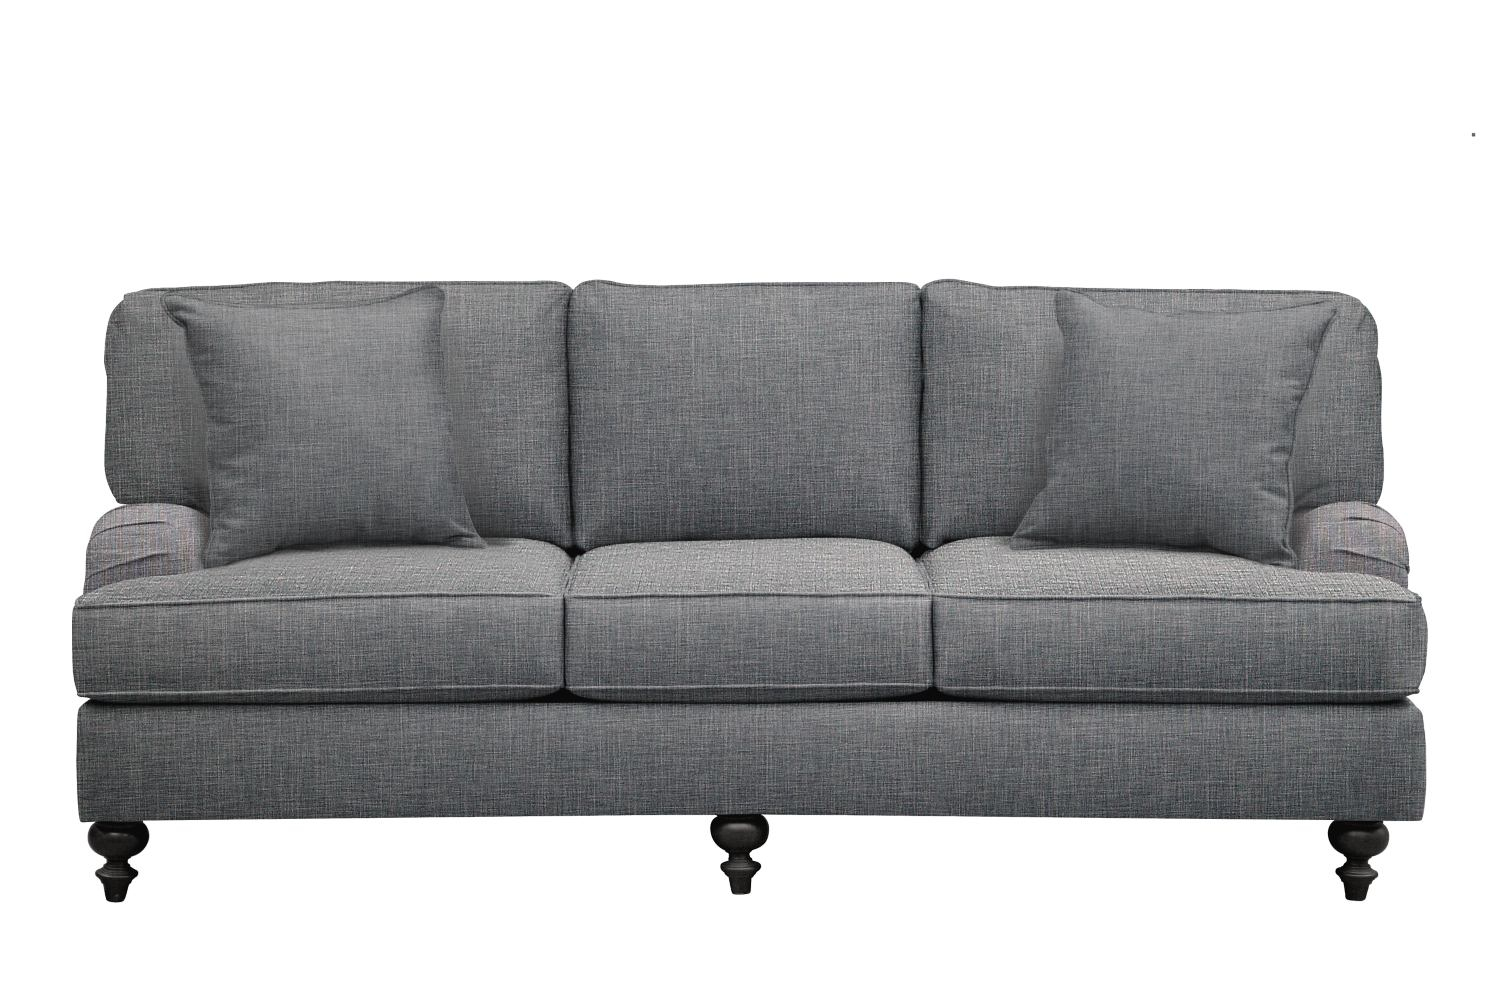 "Living Room Furniture - Avery English Arm Sofa 86"" Milford II Charcoal w/ Milford II Charcoal  Pillow"